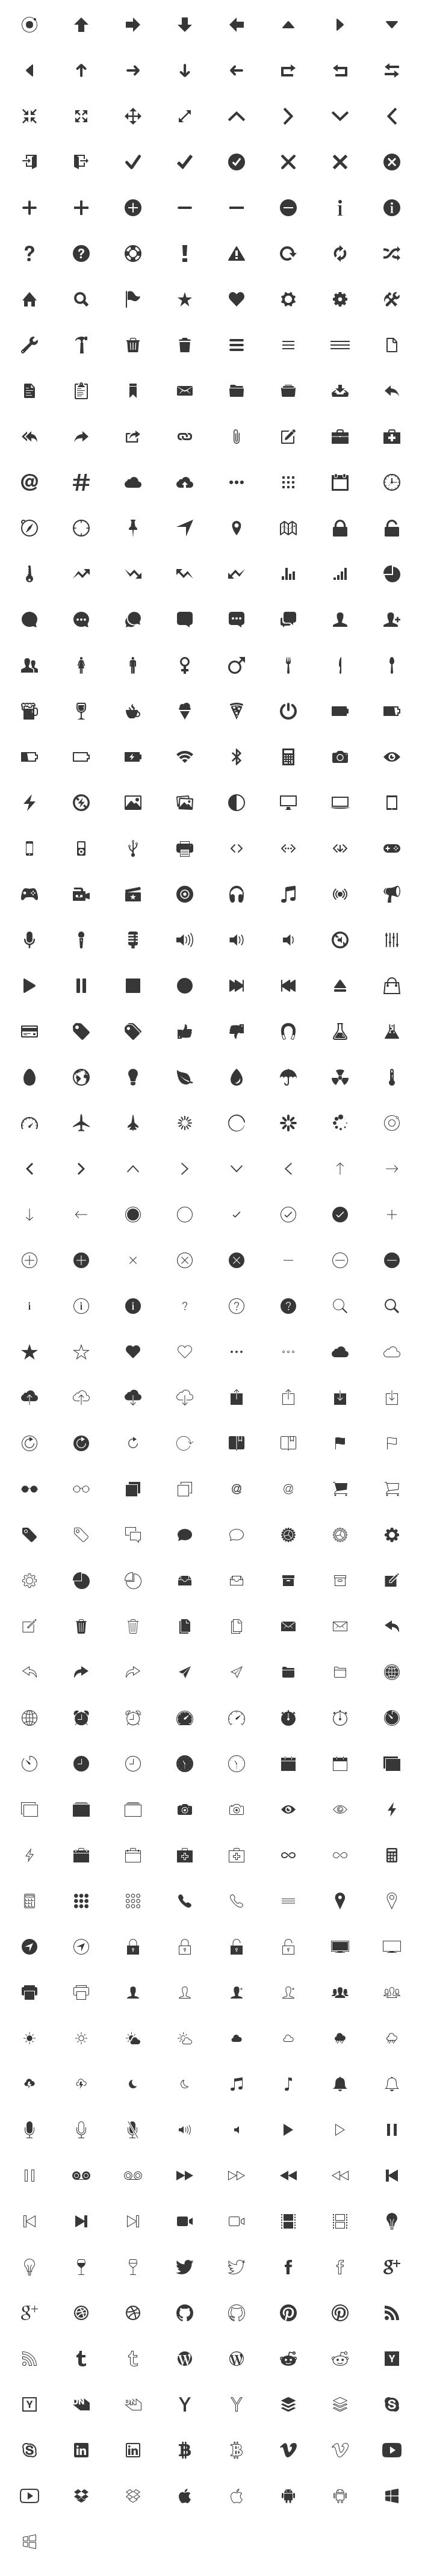 Ionicons - A free premium set of #icons